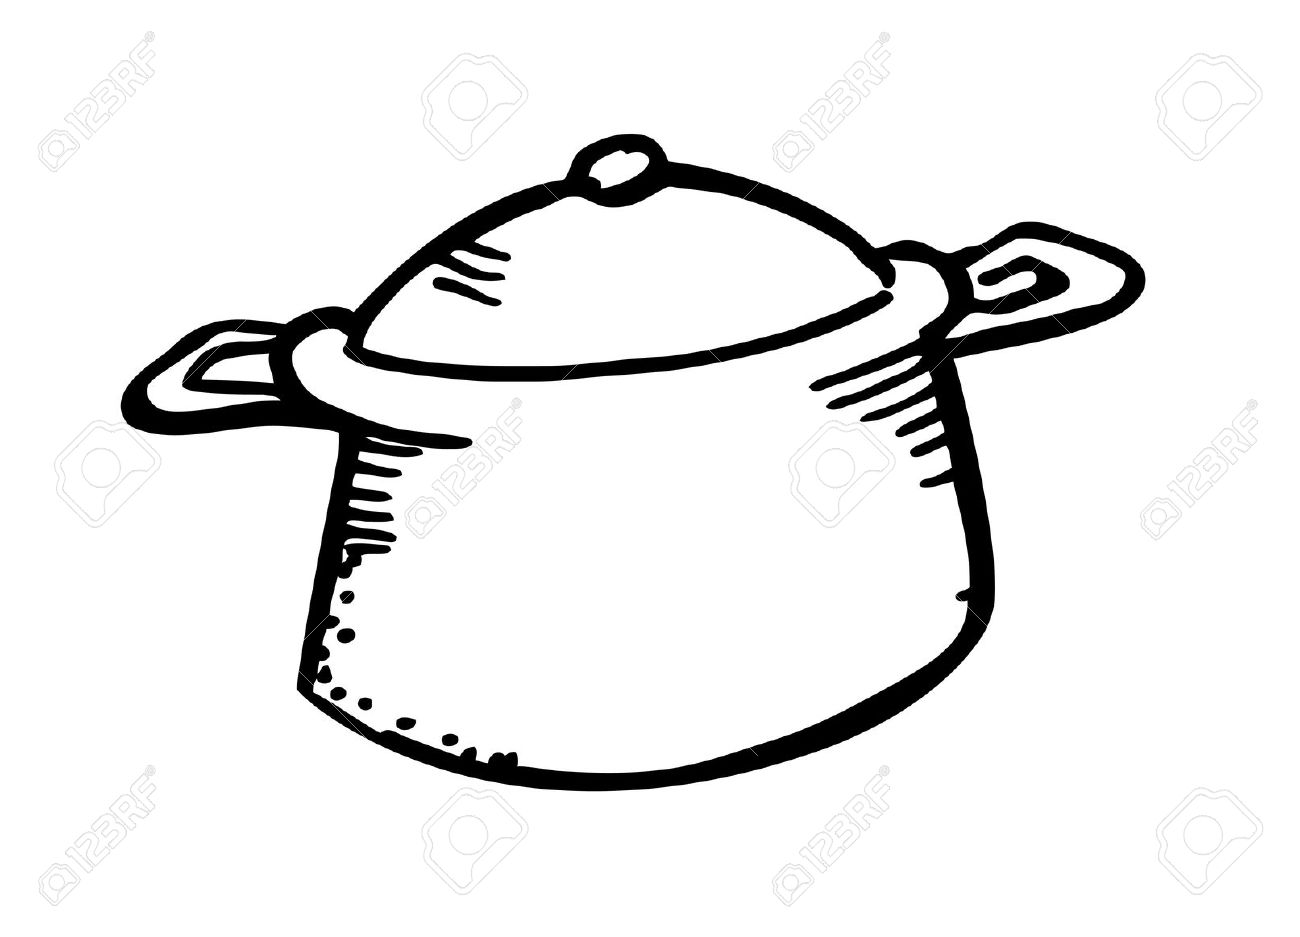 Cooking Ware Doodle Royalty Free Cliparts, Vectors, And Stock.